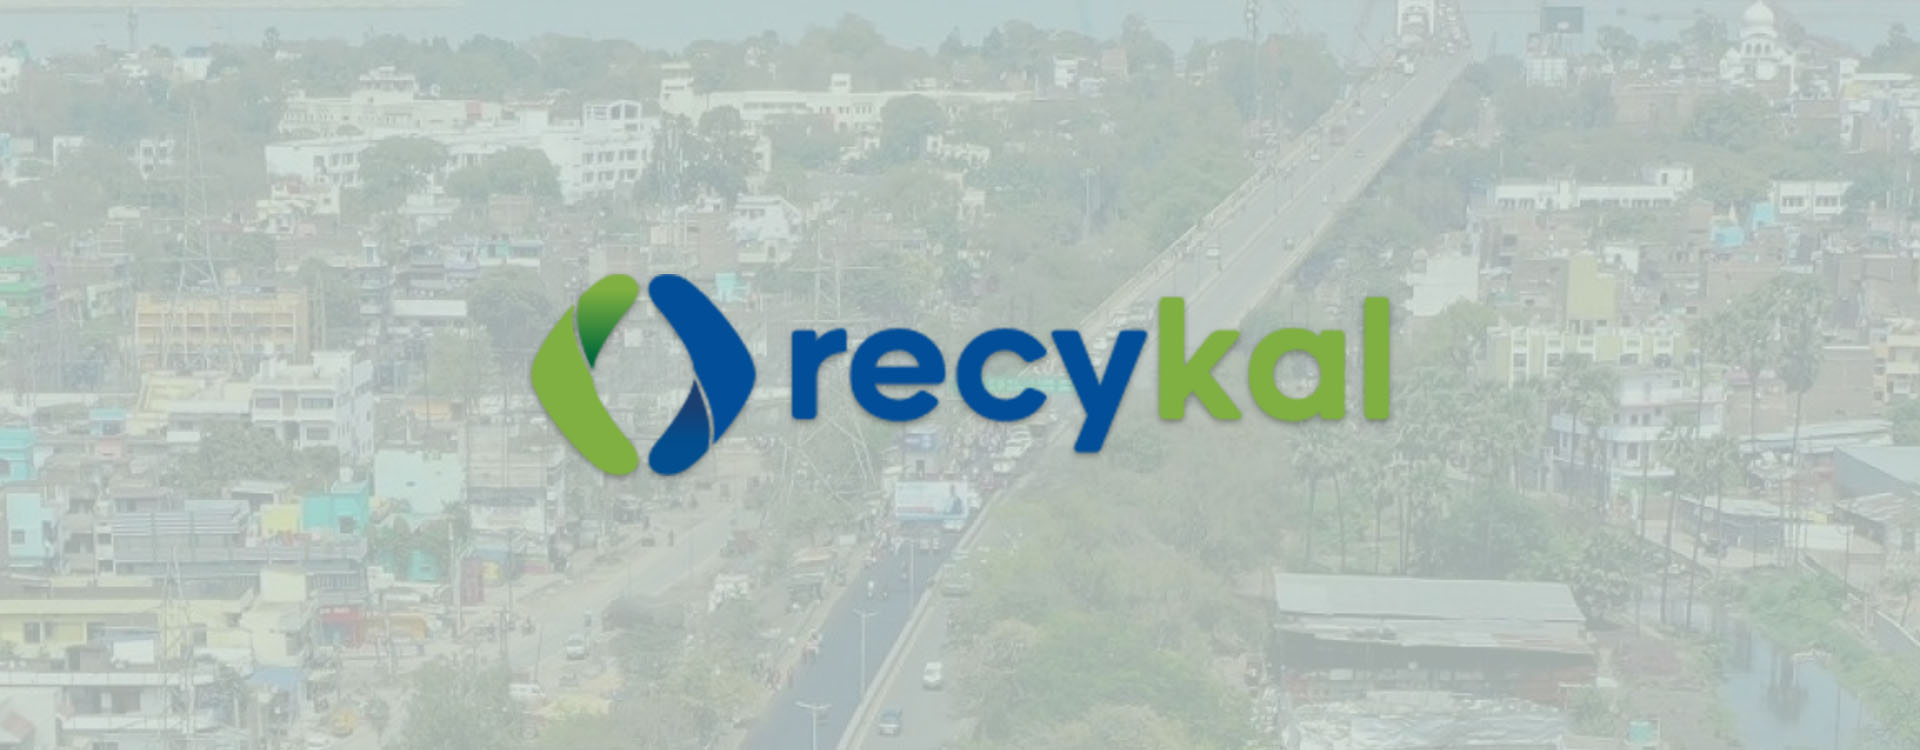 Recykal: Turning Waste Management into A Legacy